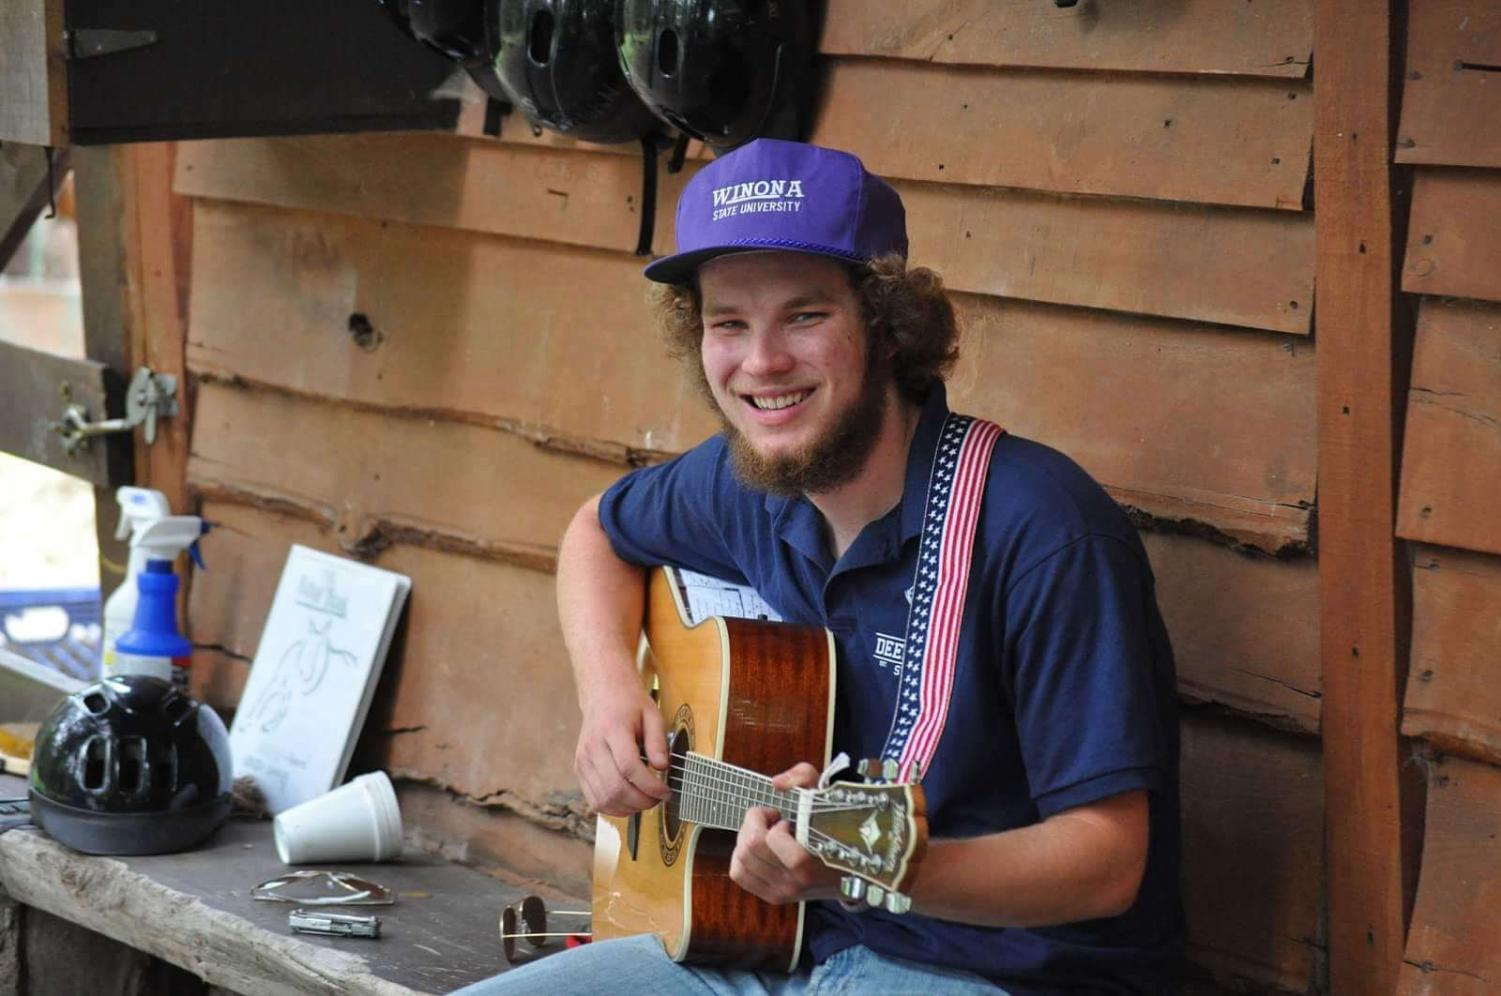 Derek Harms was a student at Winona State from 2015 until his death on April 9, 2018 from a snowboarding accident. His friends and family remember him as a kind, friendly person who always wore a smile.